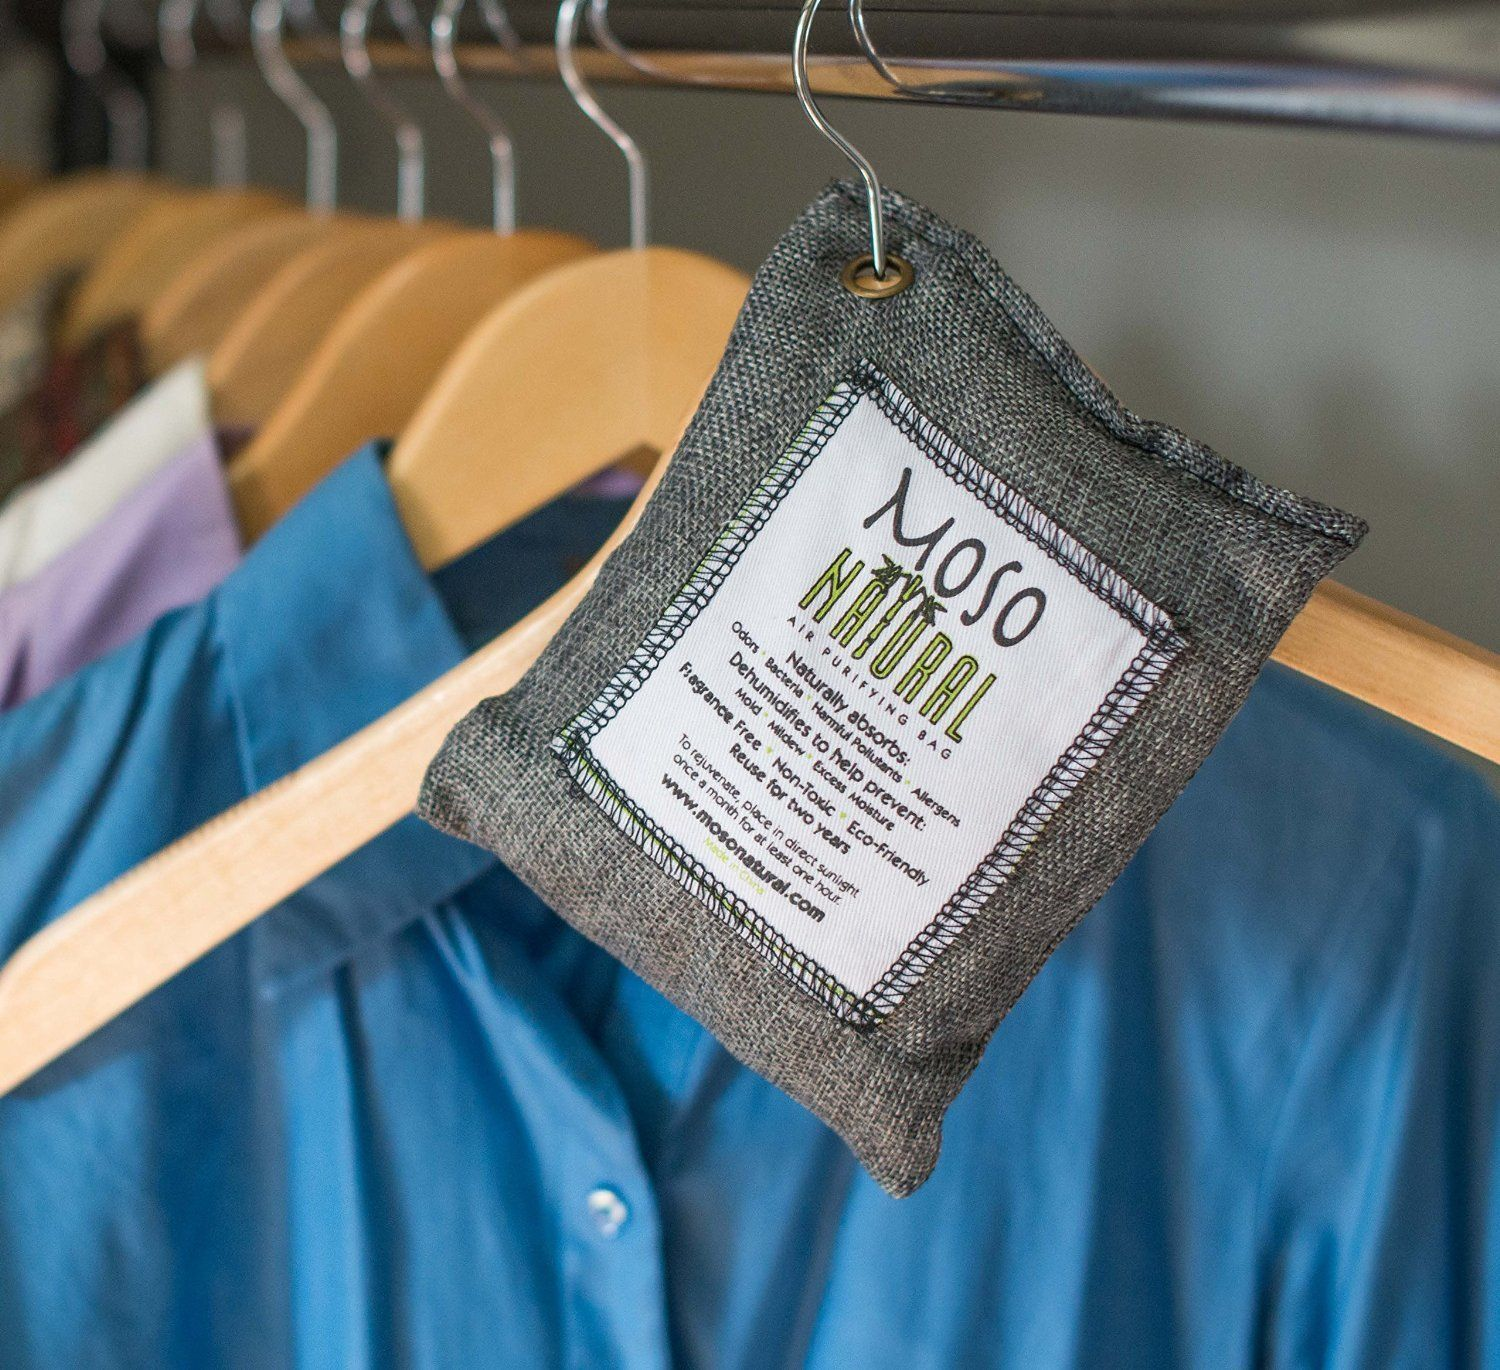 A Natural Charcoal Freshener That Absorbs Odors And Prevents Mold And Mildew  From Forming In Your Closet.